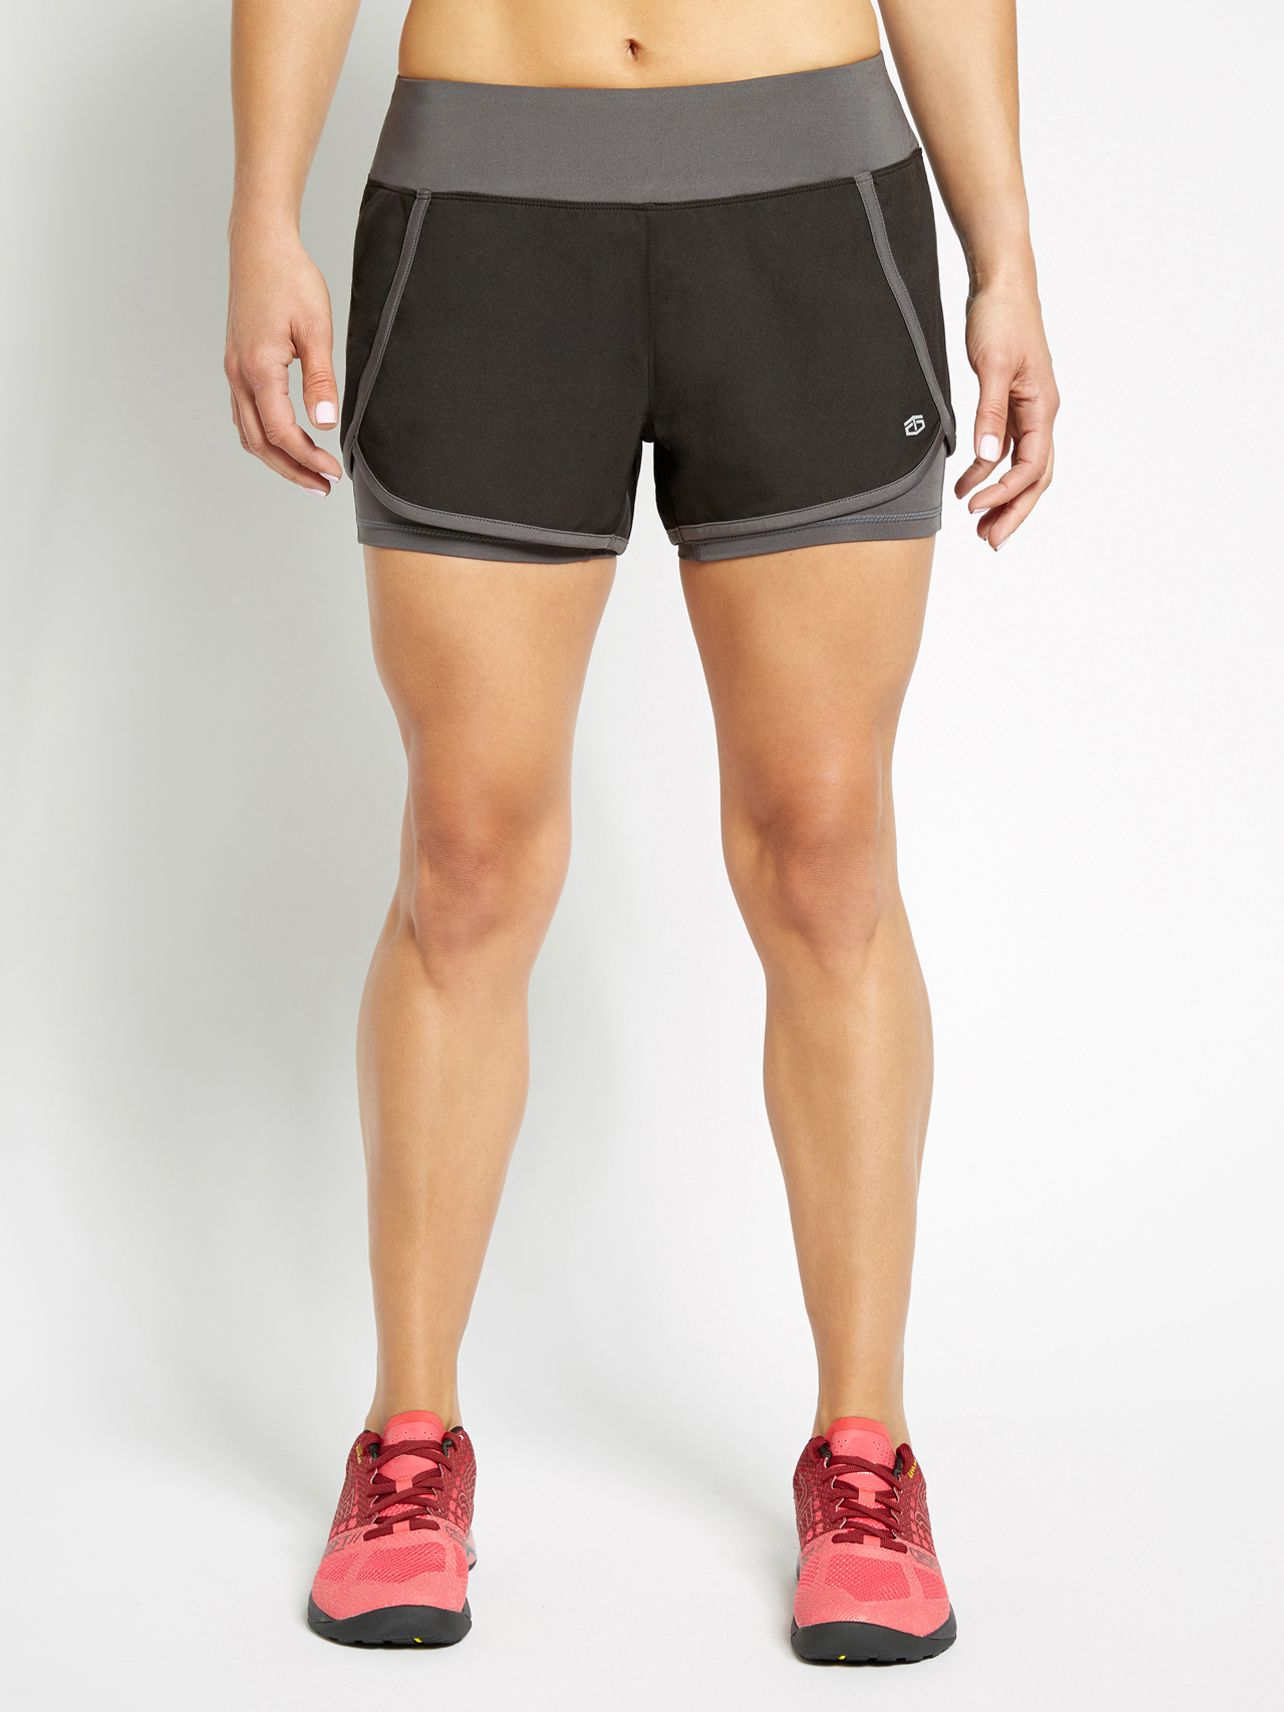 Tapout - Warrior Woven Knit Mix Short